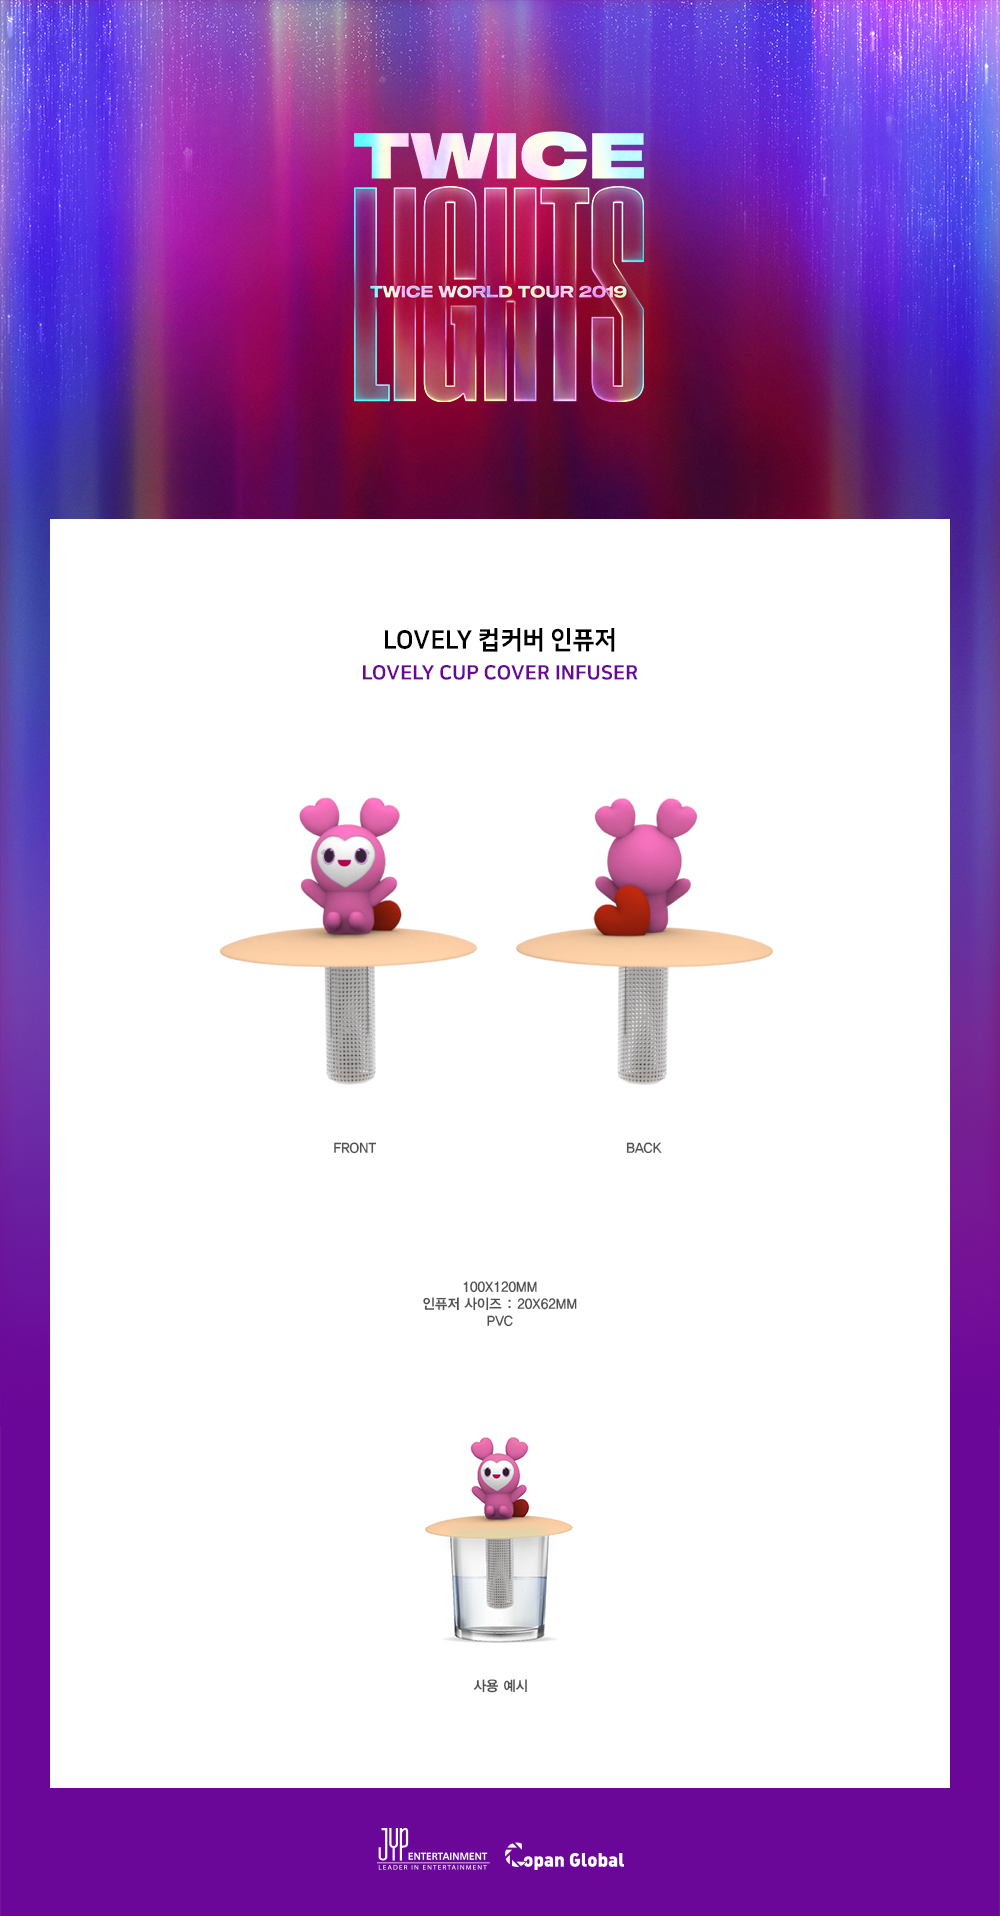 Pre Order Twice World Tour 2019 Lights Goods Lovely Cup Cover